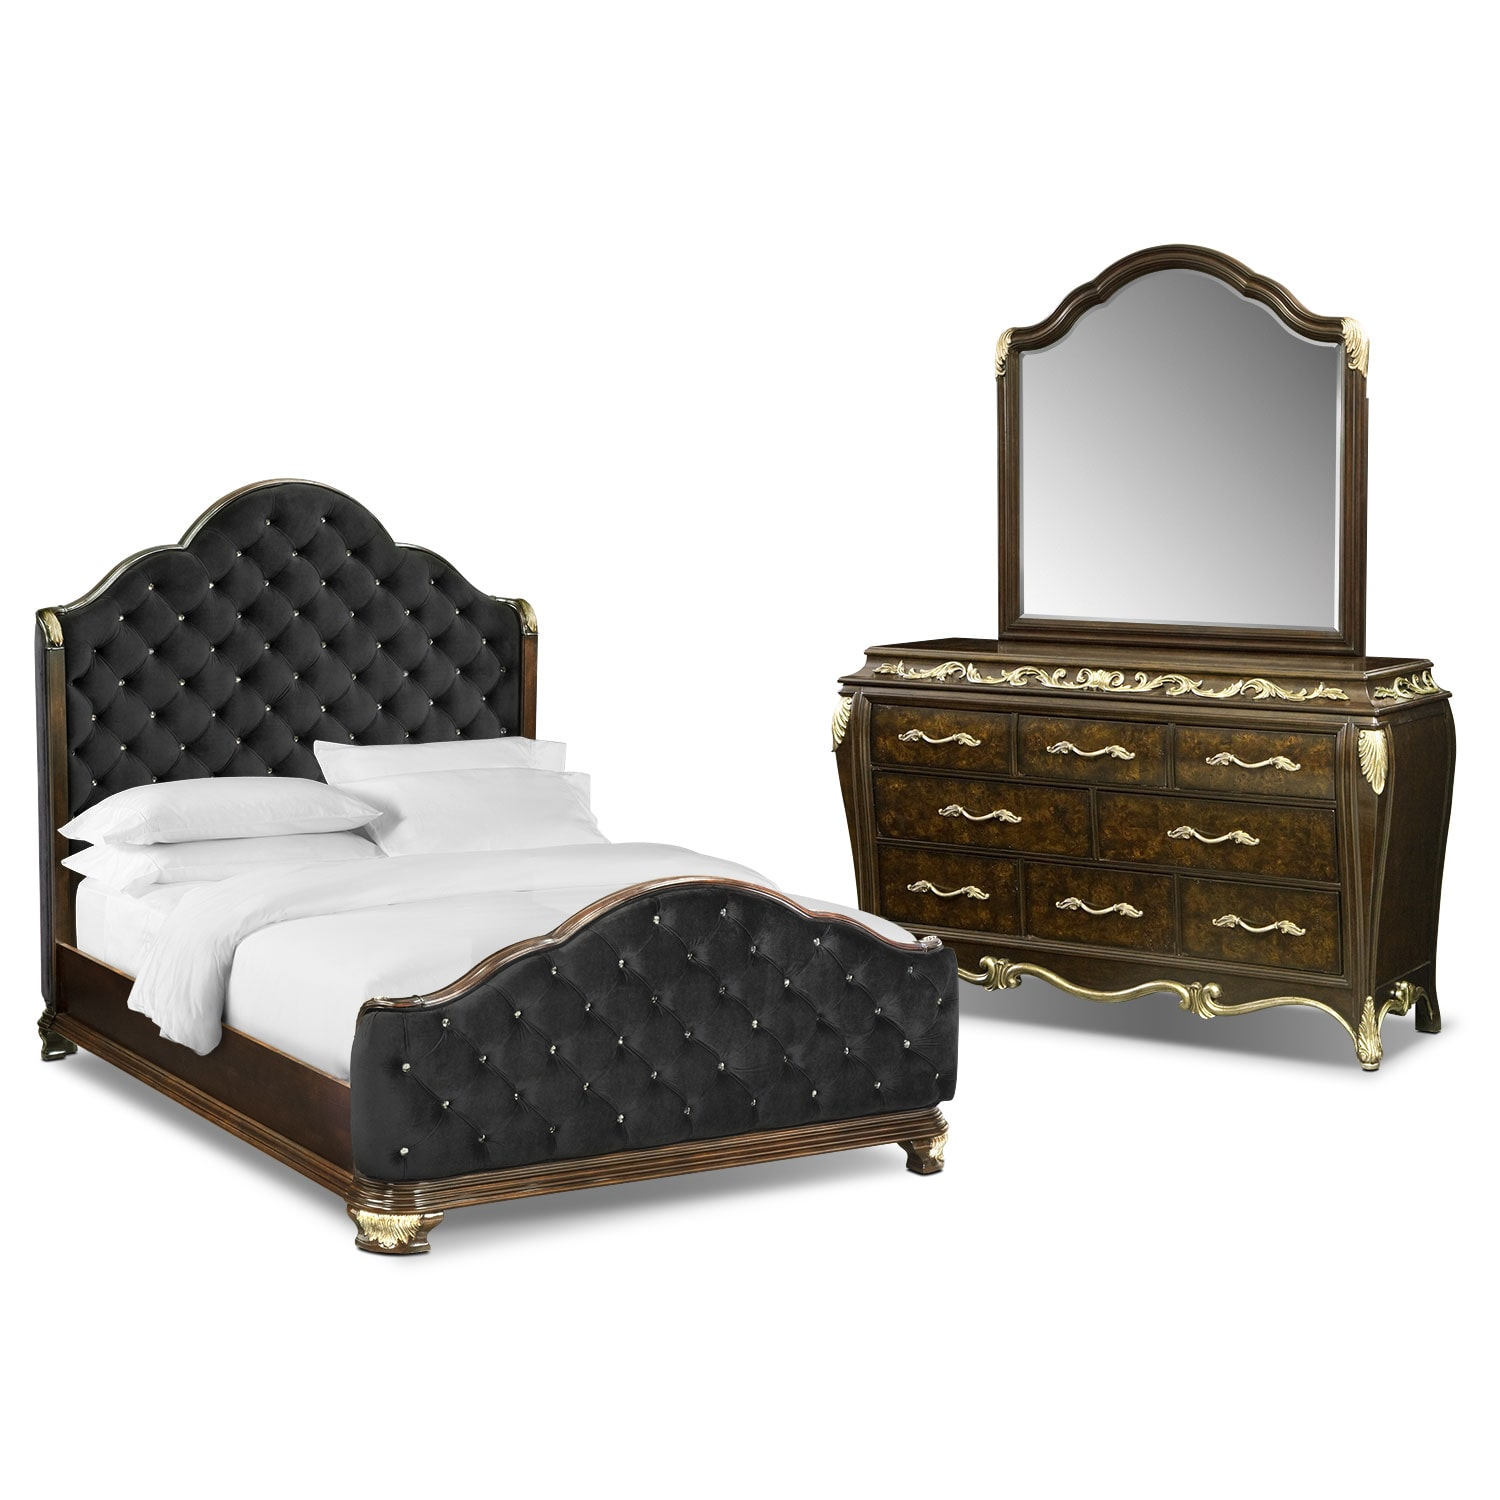 Bedroom Furniture - Anastasia 5 Pc. Queen Bedroom Package